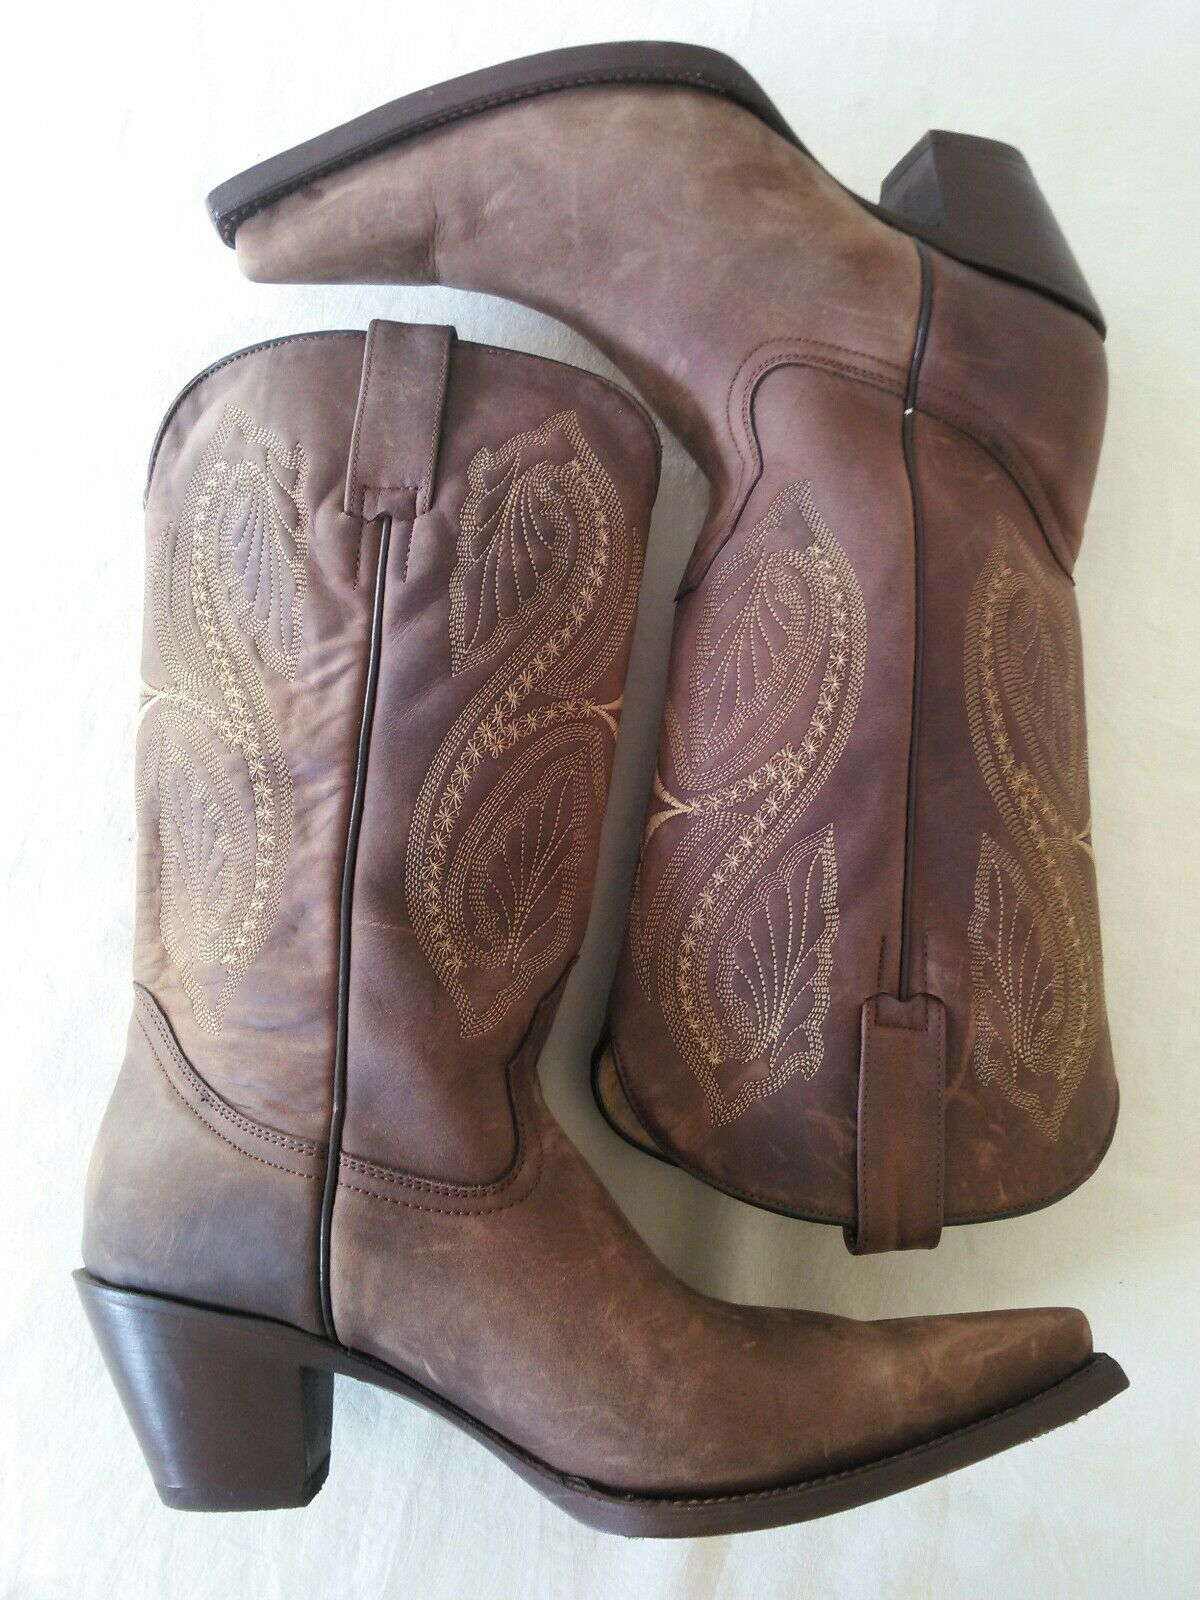 Ladies JE-VER JE-VER JE-VER Brown Leather pointed toe cowboy style fashion boots Size 7.5- 8 8923a4